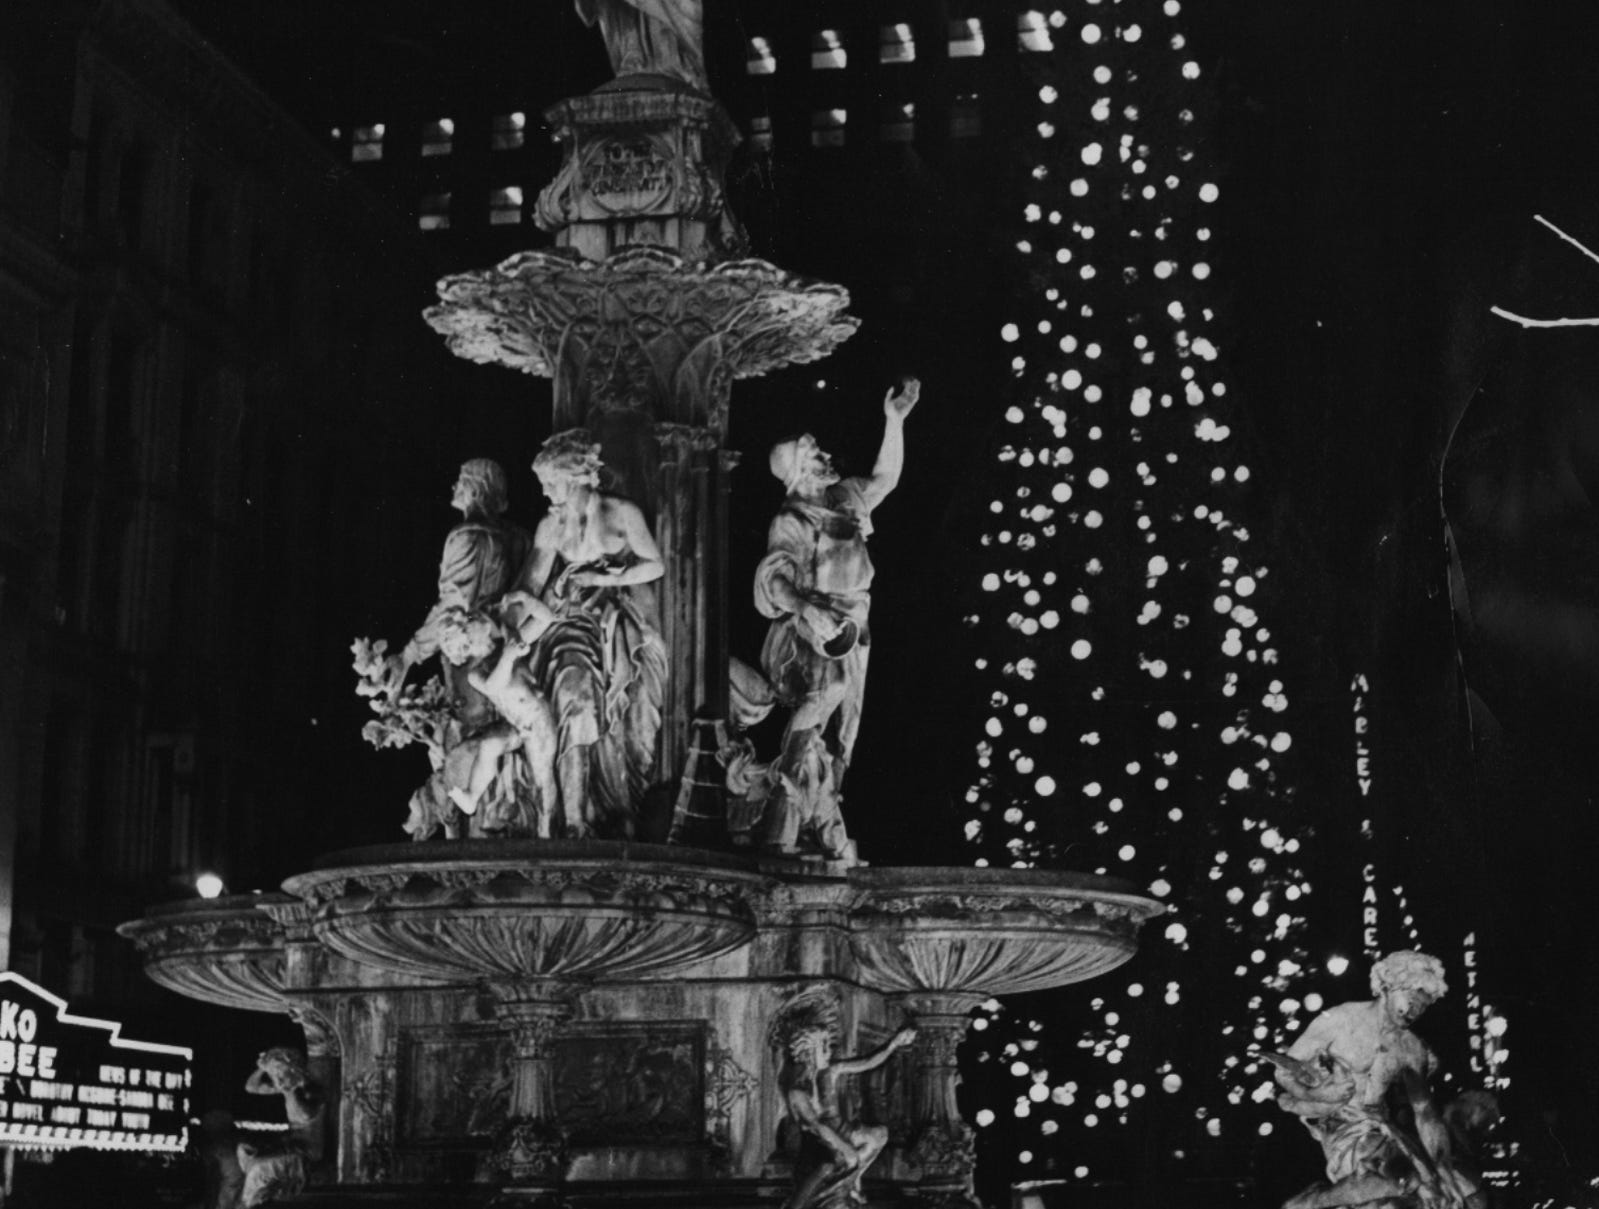 1959: A flick of a switch brought the fall color and warmth of the Christmas season to Fountain Square as lights on two 100-foot Christmas trees were lit in a simple ceremony.